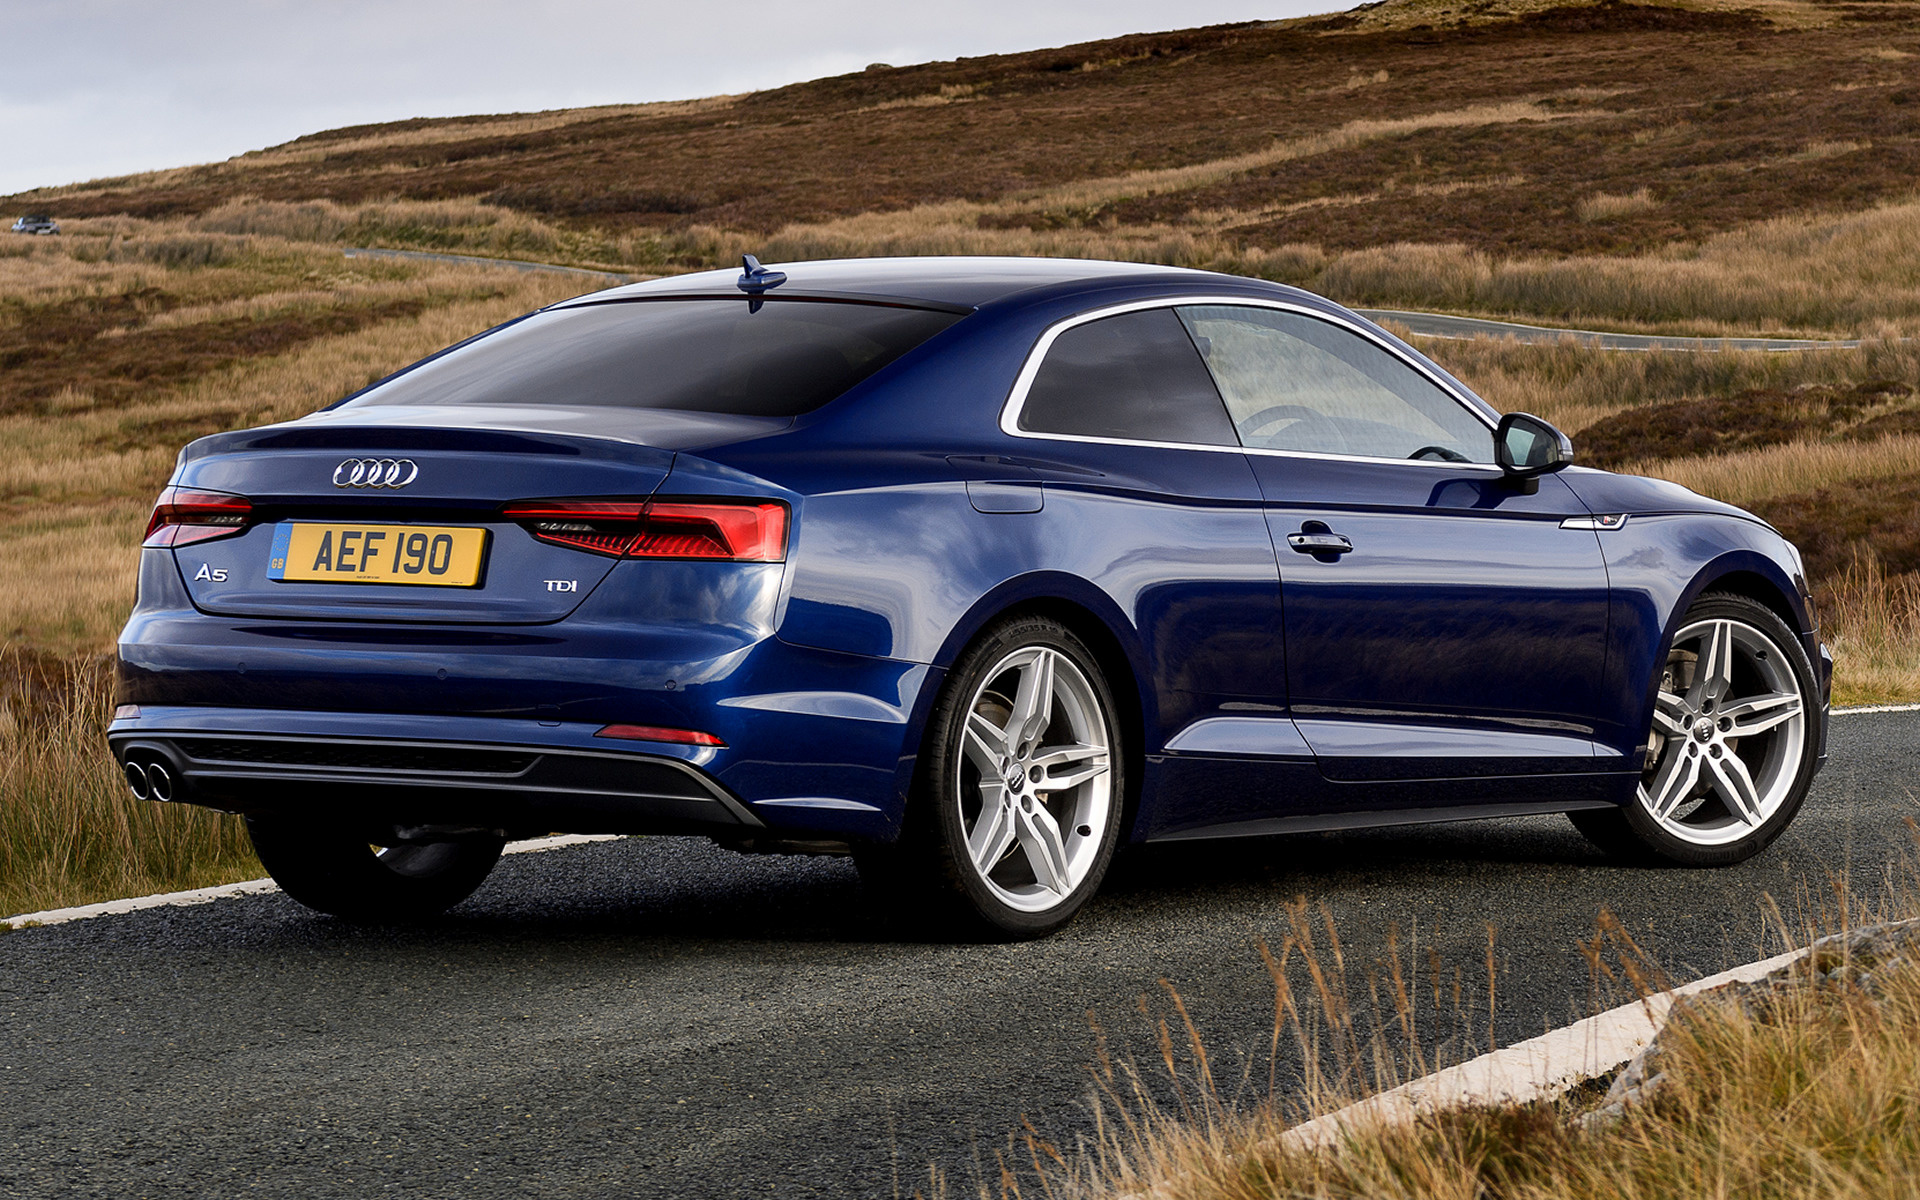 audi a5 coupe s line 2016 uk wallpapers and hd images car pixel. Black Bedroom Furniture Sets. Home Design Ideas